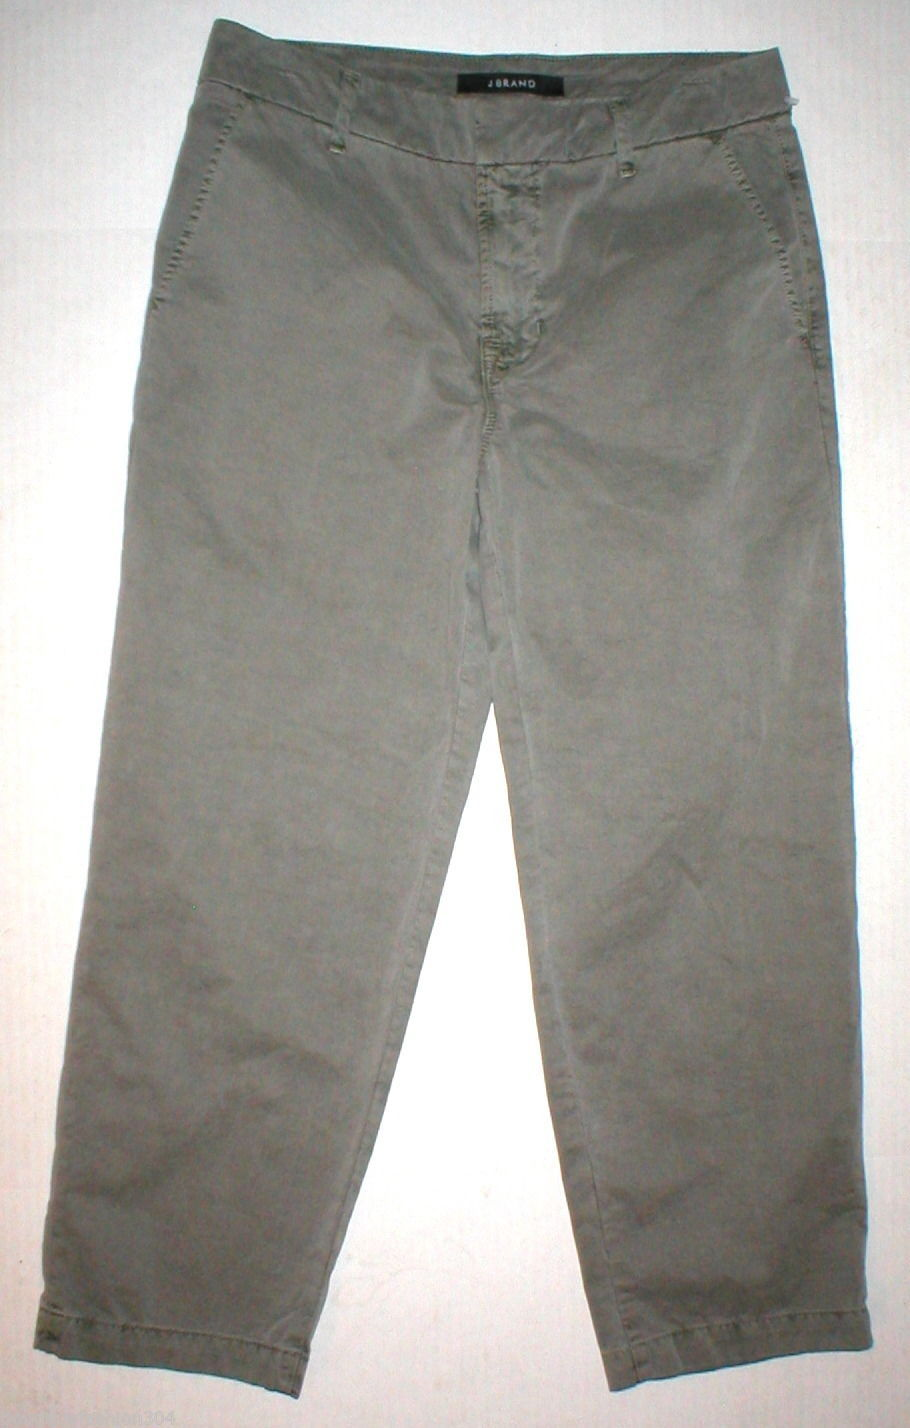 New J Brand Jeans Relaxed Womens Parker Vin Fort 25 Chino Pant Army Green Cotto